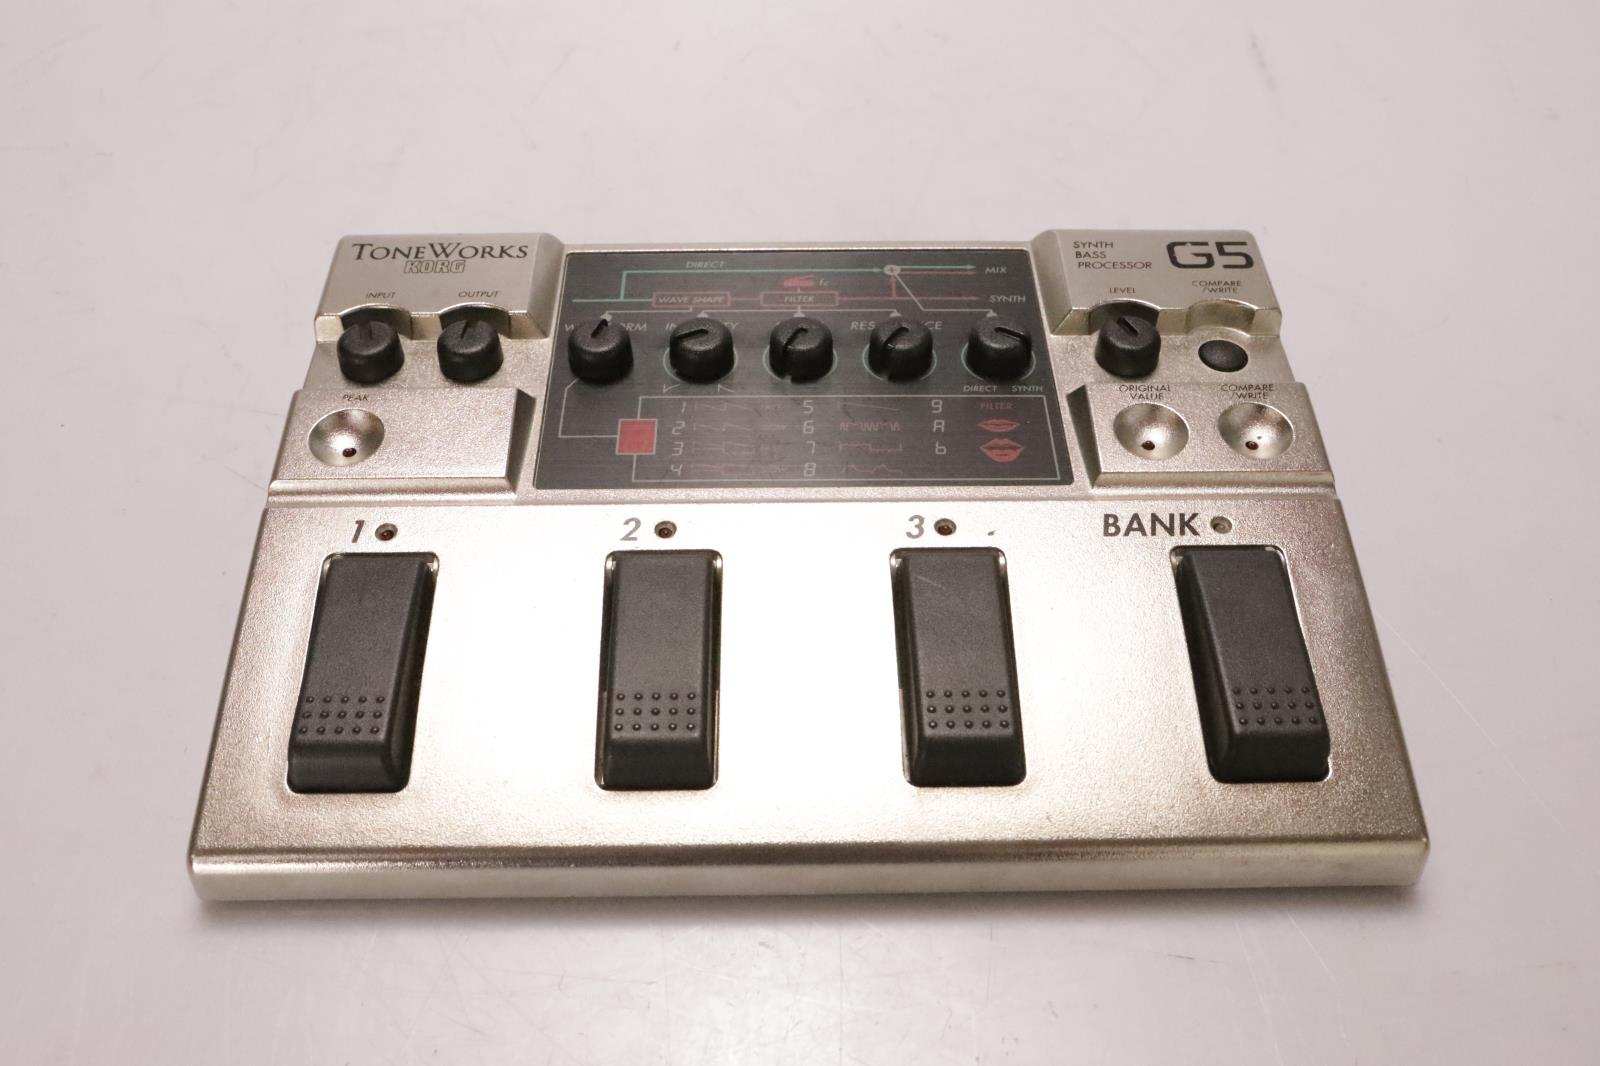 Korg ToneWorks G5 Bass Synth Processor Multi-Effects Pedalboard #36949